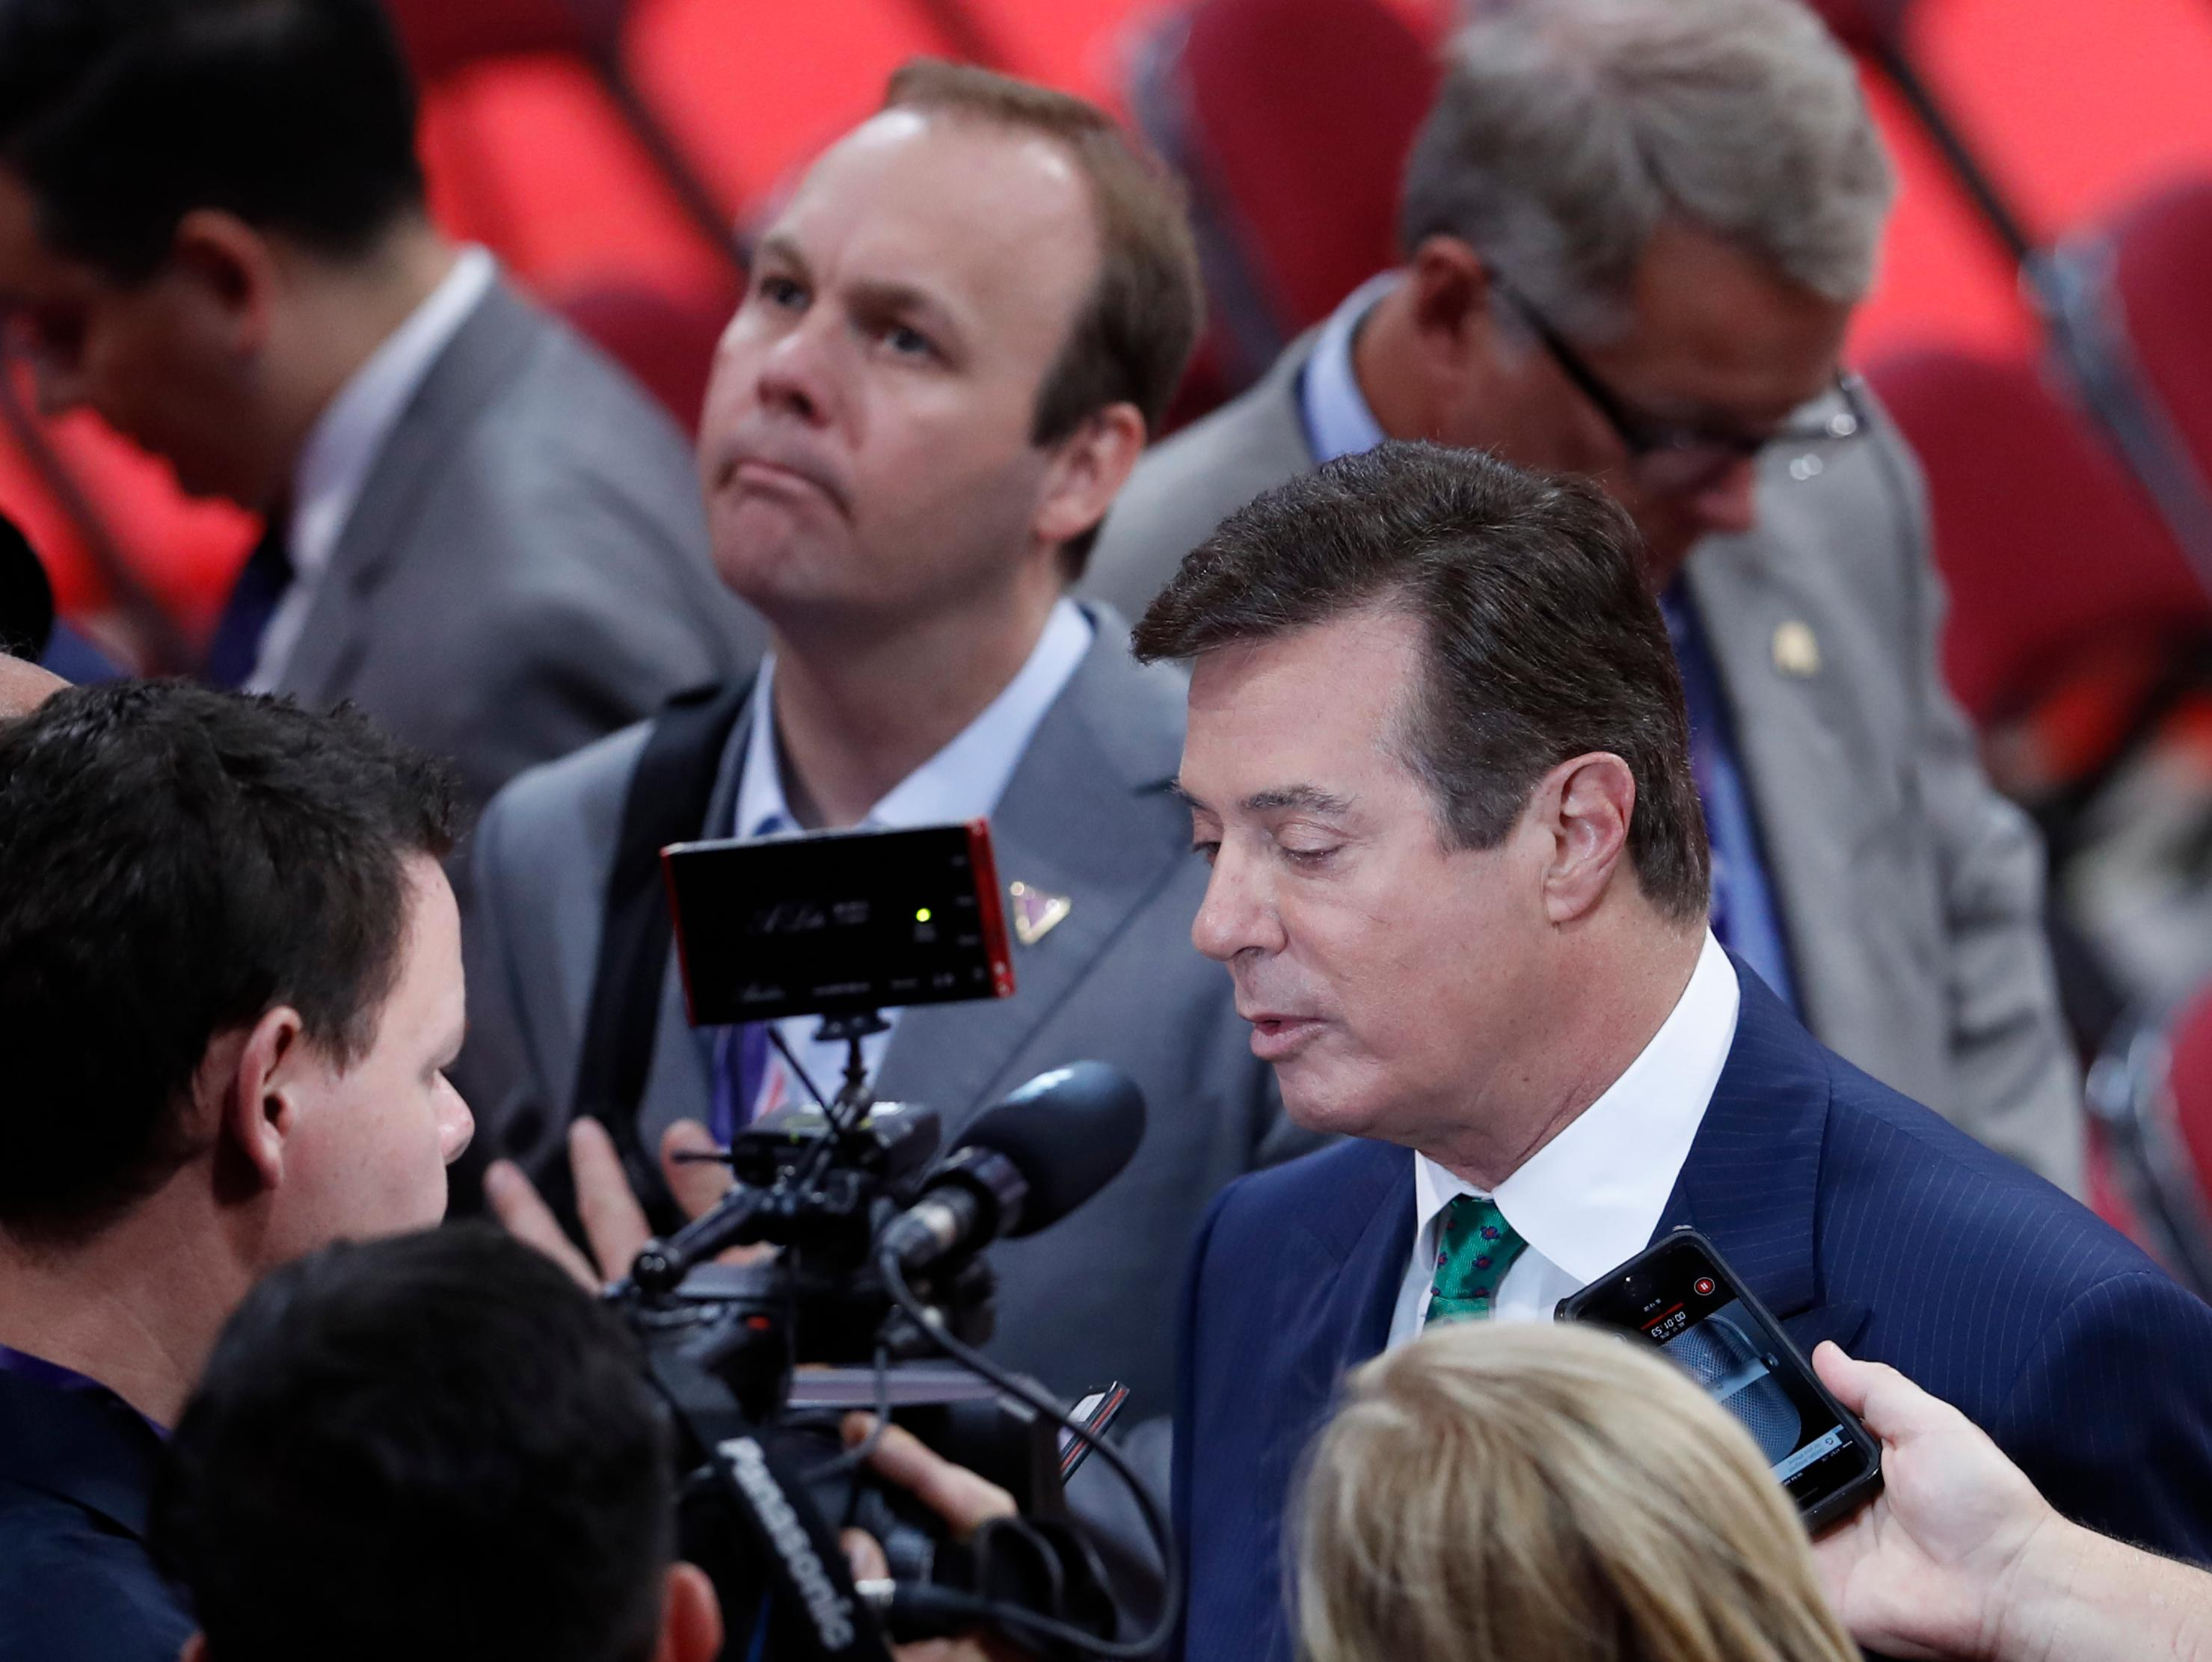 FILE - In this July 17, 2016 file photo, President Donald Trump's Campaign Chairman Paul Manafort is surrounded by reporters on the floor of the Republican National Convention in Cleveland. Rick Gates, a former business associate to Manafort and former campaign aide to Republican presidential candidate Donald Trump, is center rear.   (AP Photo/J. Scott Applewhite)